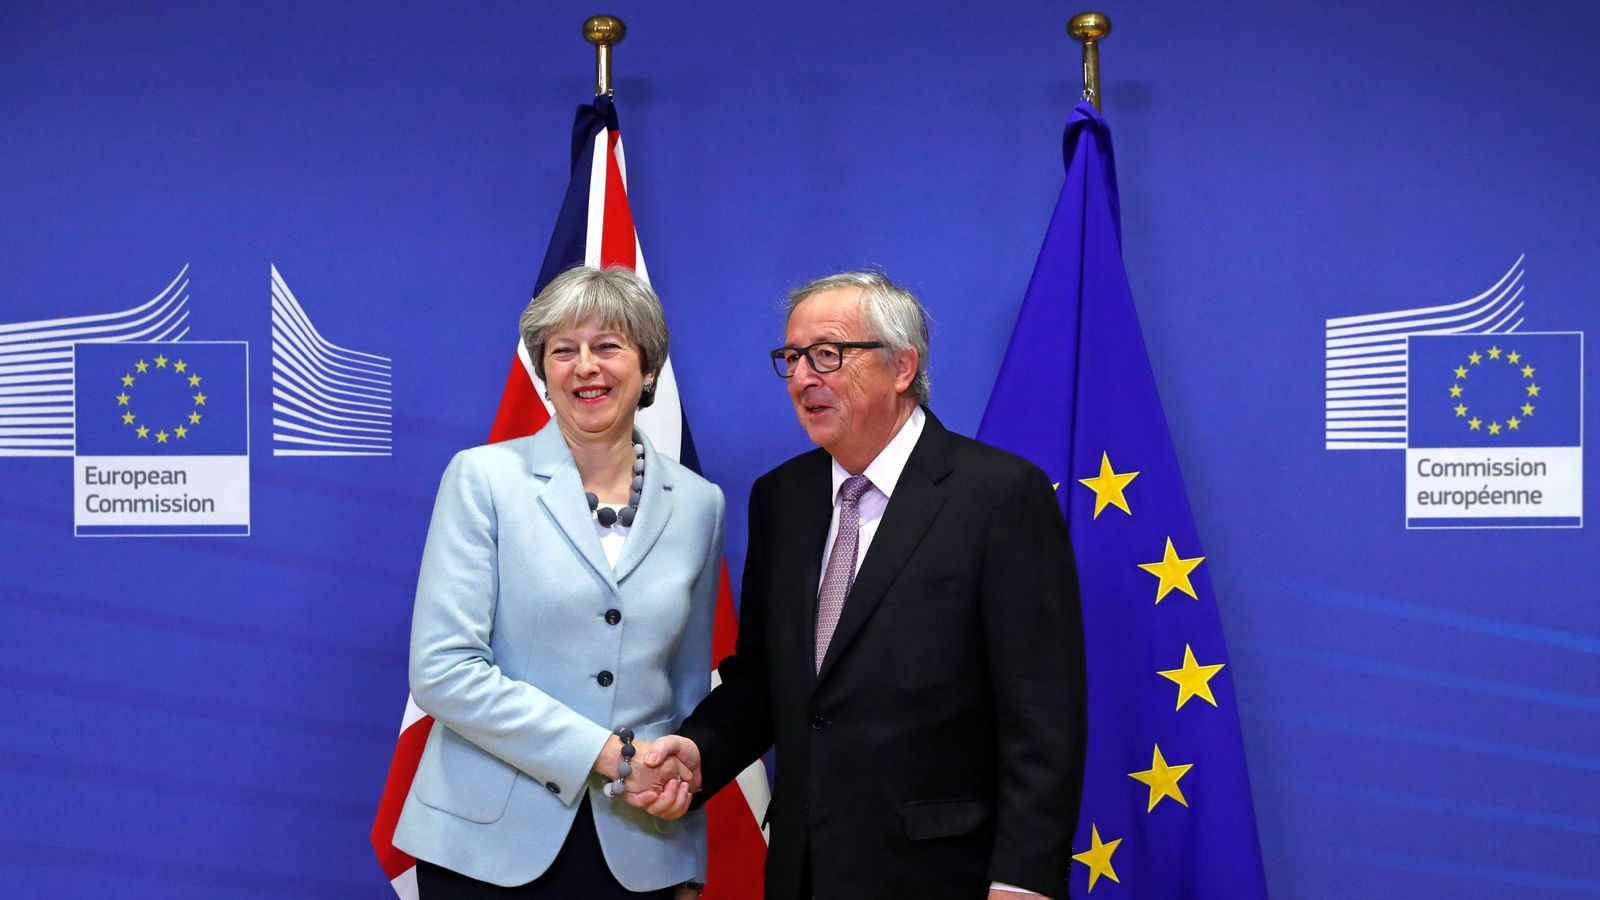 Theresa May secures Brexit deal with EU after all-night talks                                                                              The EU and UK are ready to move to trade negotiations after the PM made a pre-dawn trip to Brussels to secure a divorce deal.